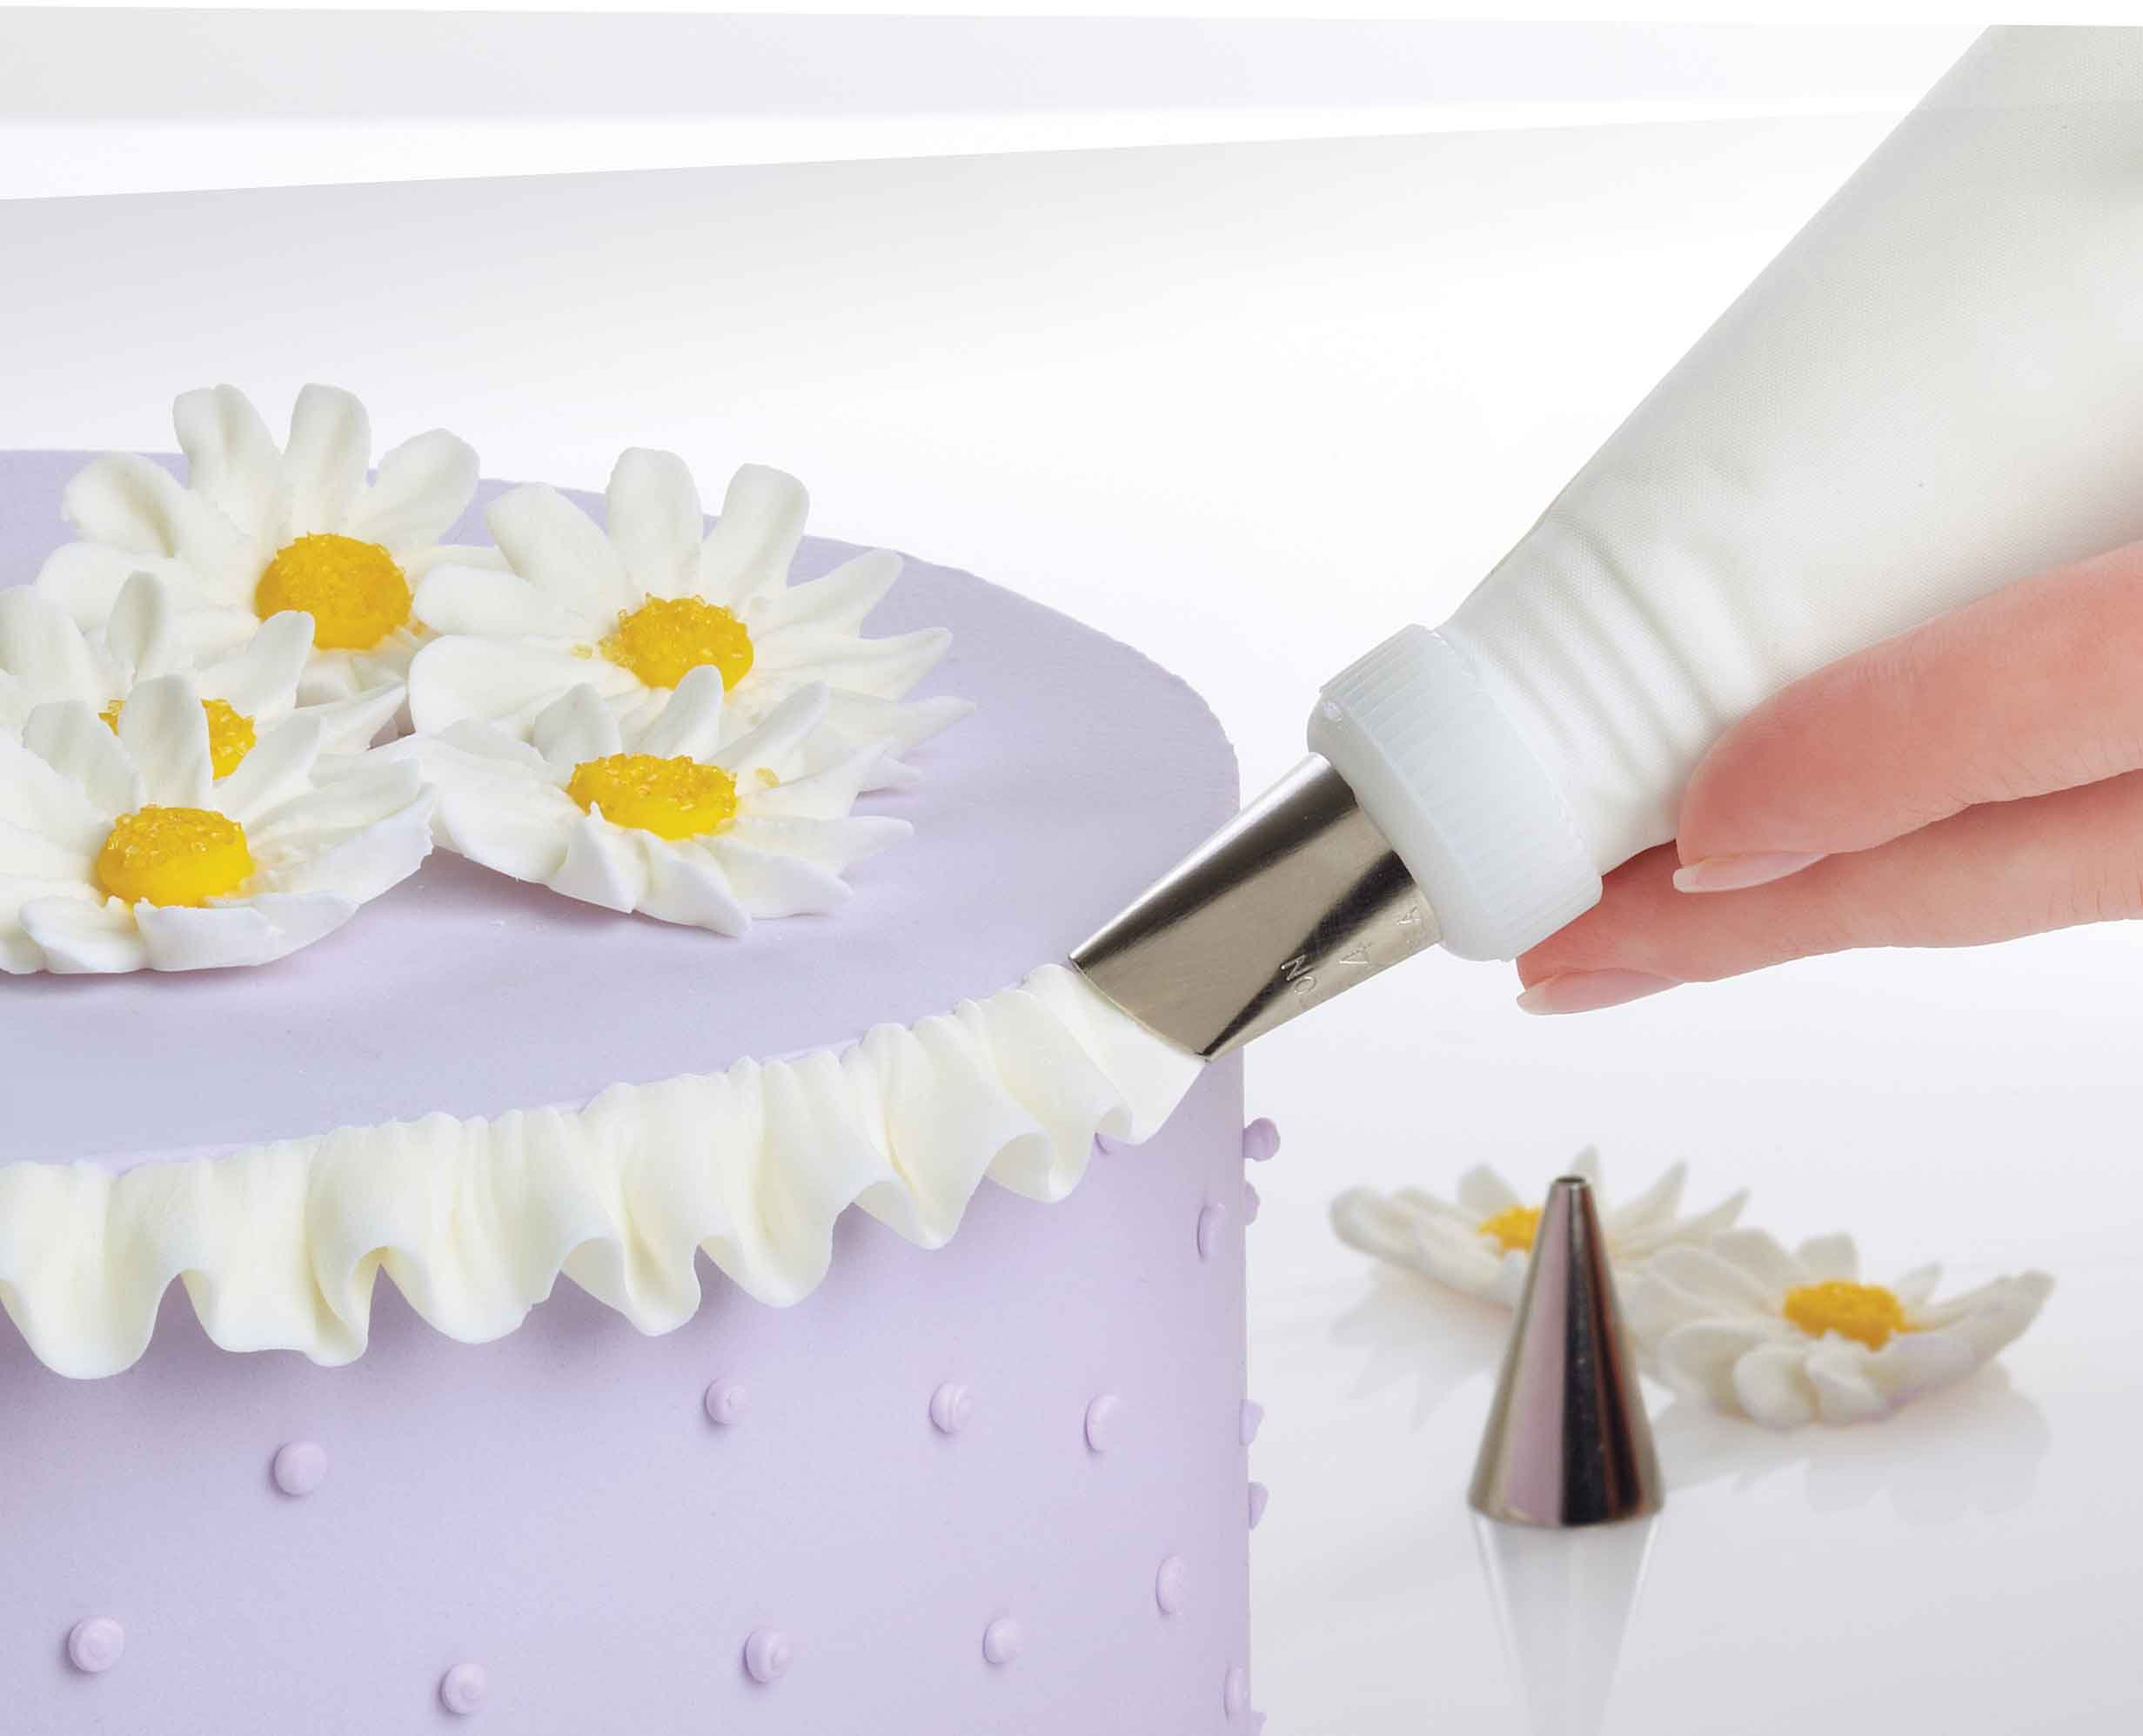 Cake Decor Ring : Wilton 2109-0309 Ultimate Professional Cake Decorating Set ...